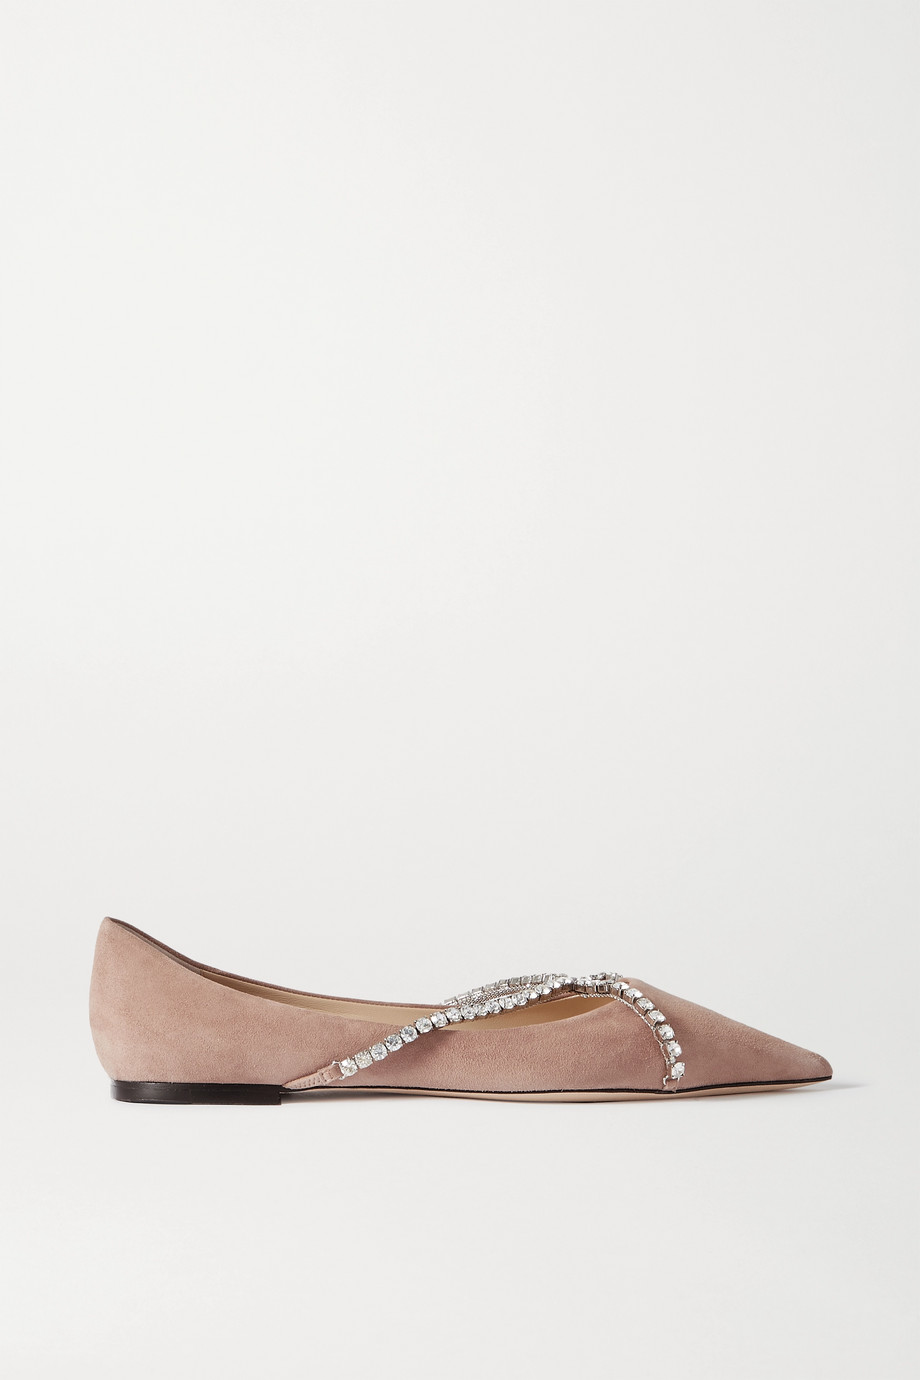 JIMMY CHOO Genevi crystal-embellished suede point-toe flats